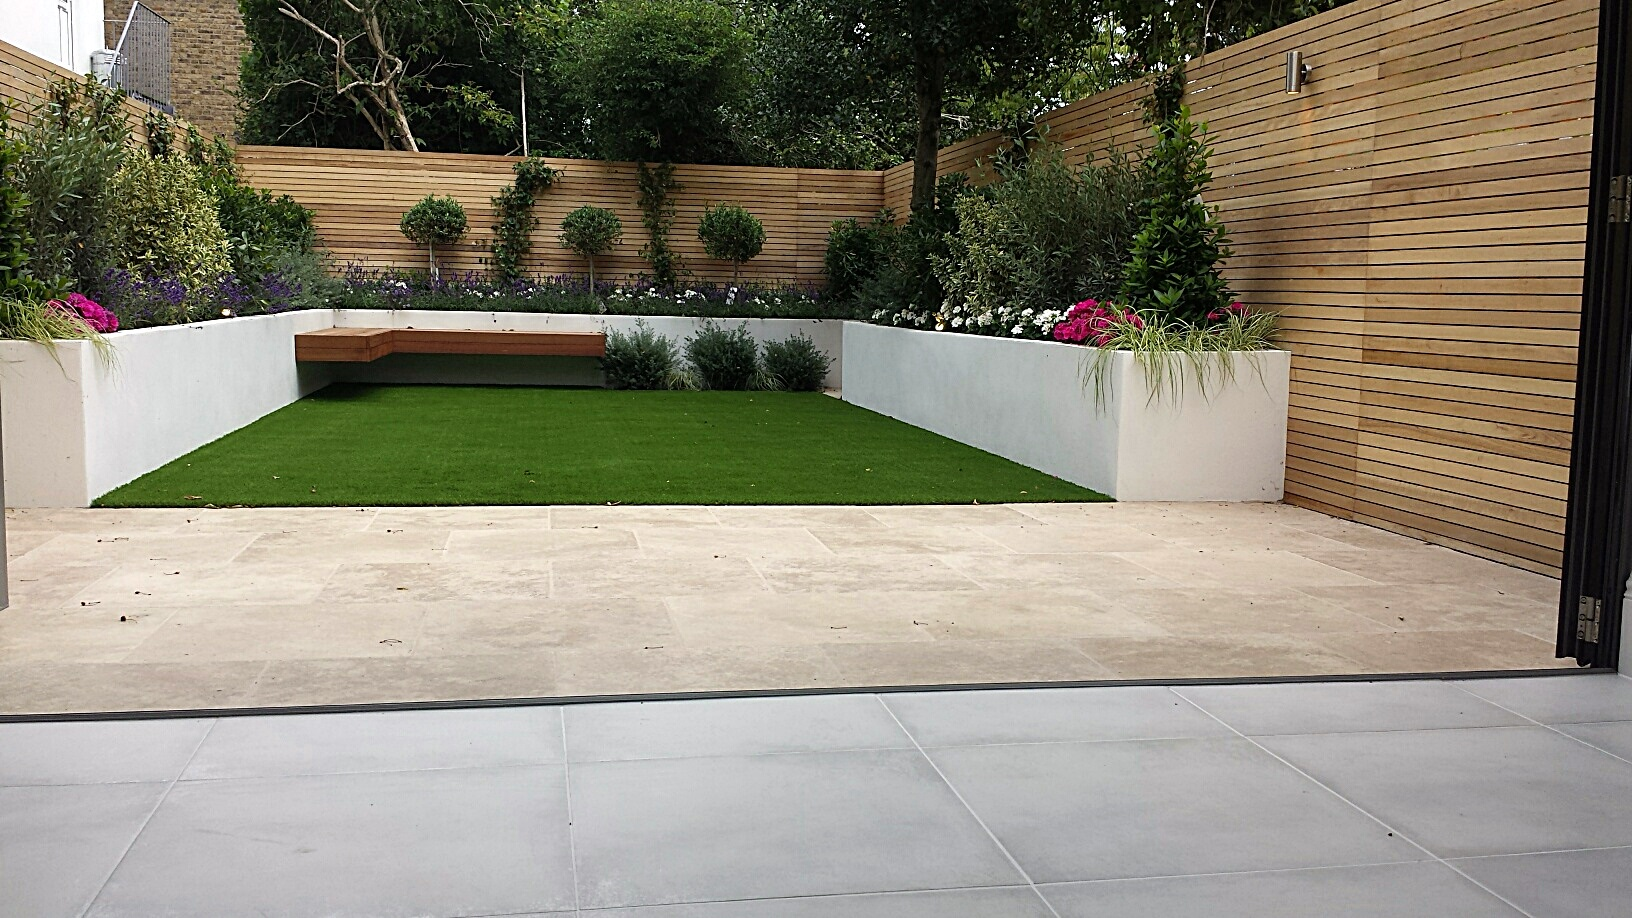 outdoor indoor theme garden design modern urban garden designer fulham chelsea kensington mayfair london